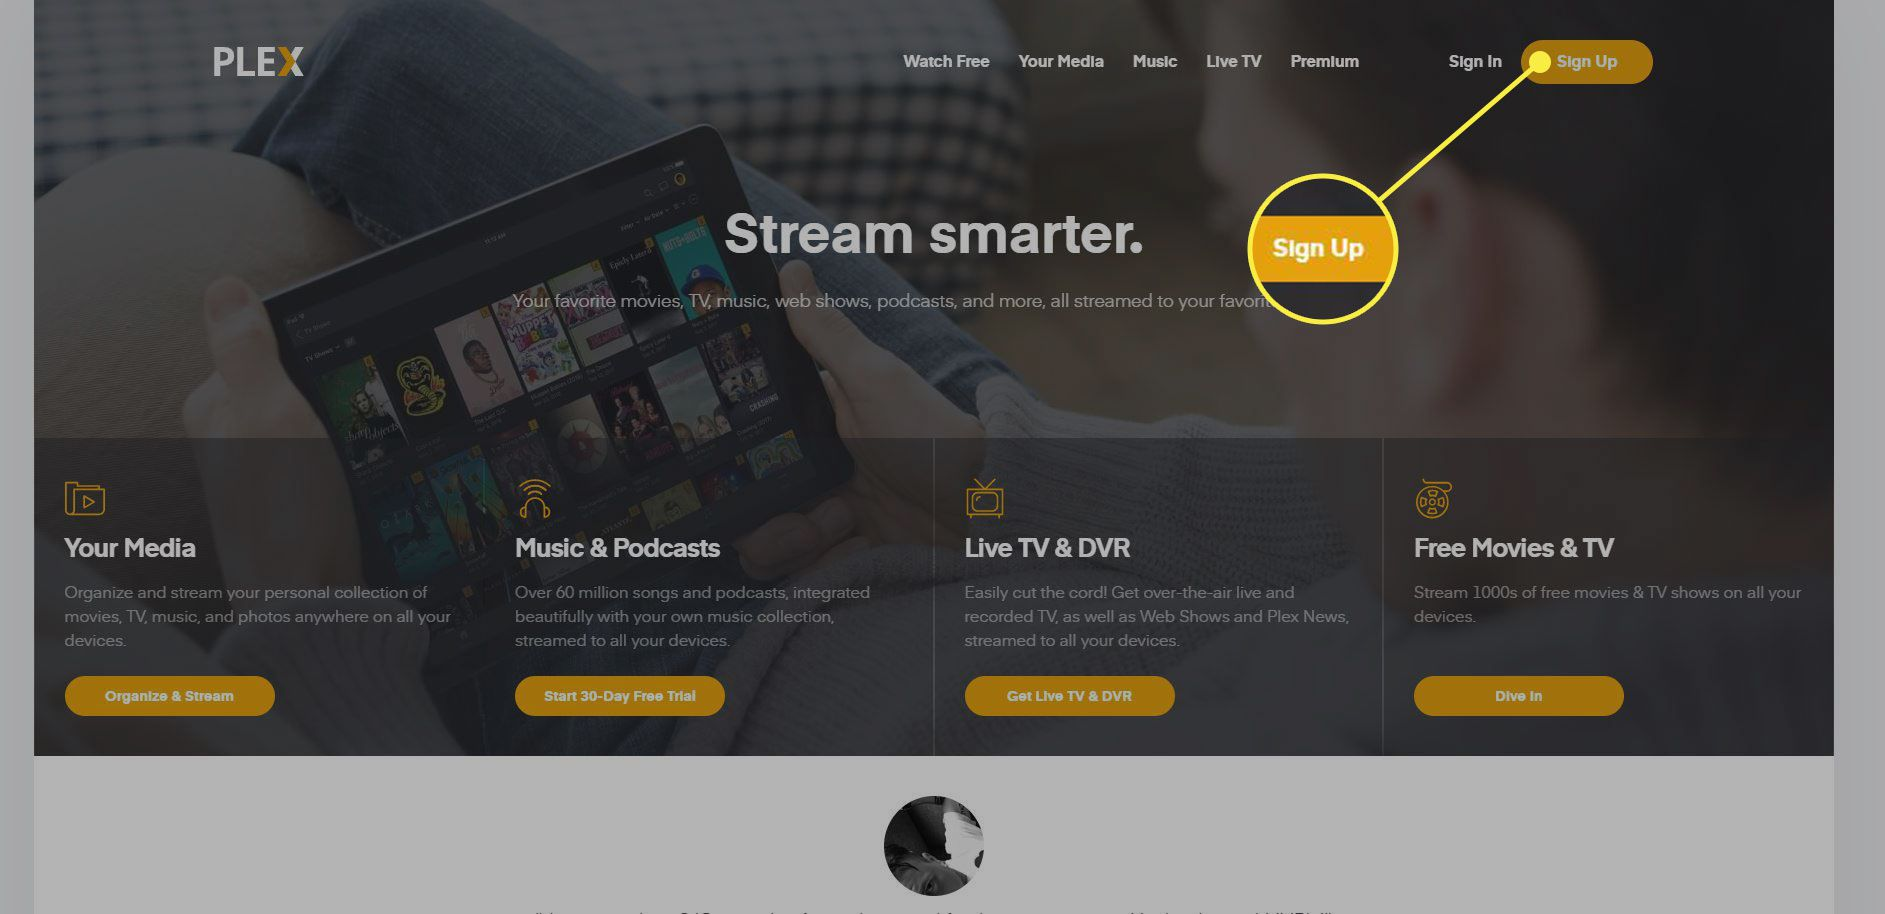 A screenshot of the Plex website with the Sign Up button highlighted